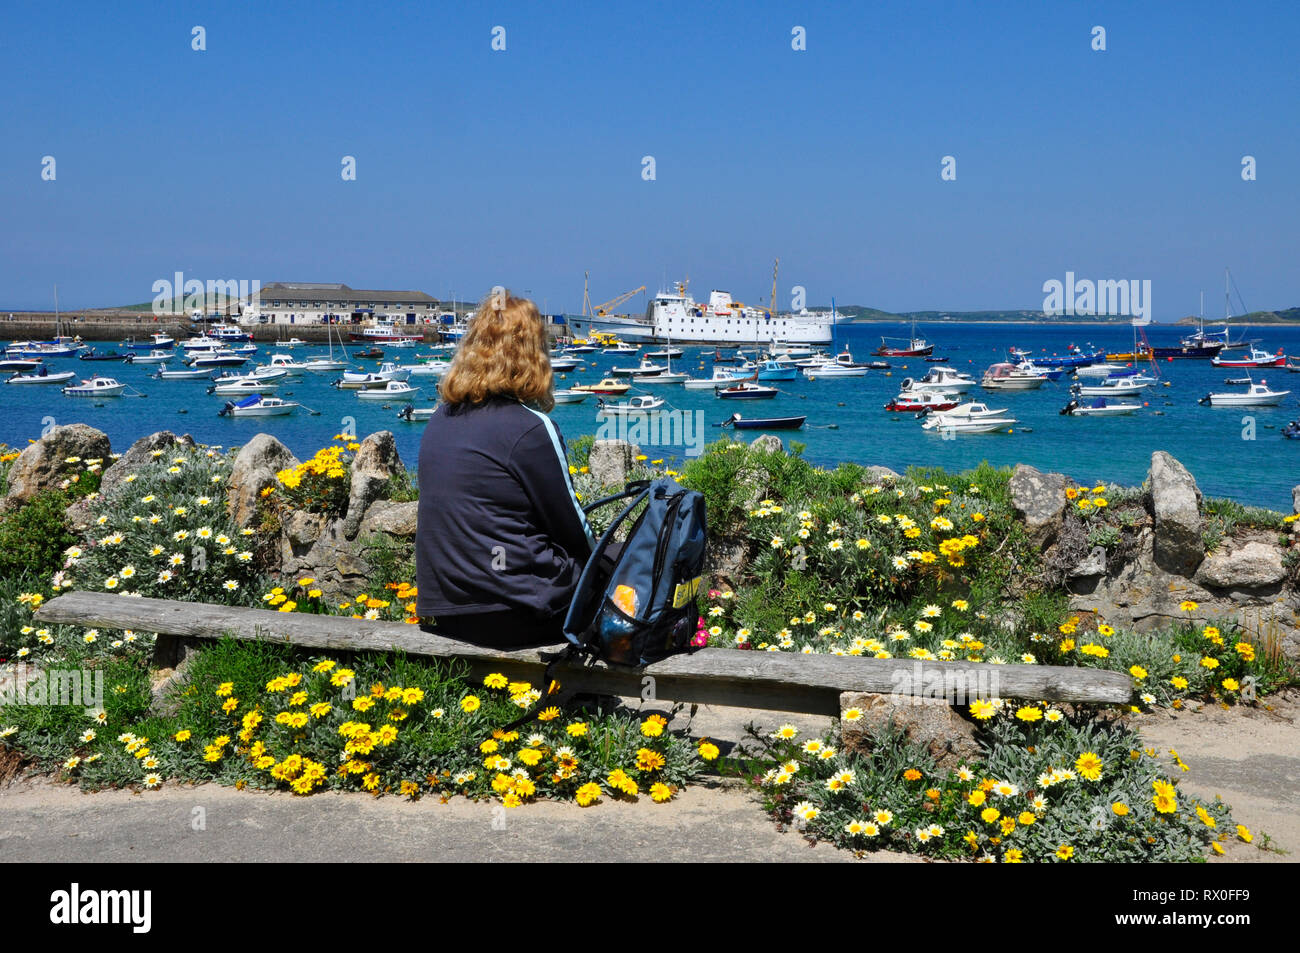 Holidaymaker enjoying the view across the crowded harbour at Hugh Town, St Mary's, Isles of Scilly. While Scillonian 3 is being unloaded after it jour - Stock Image